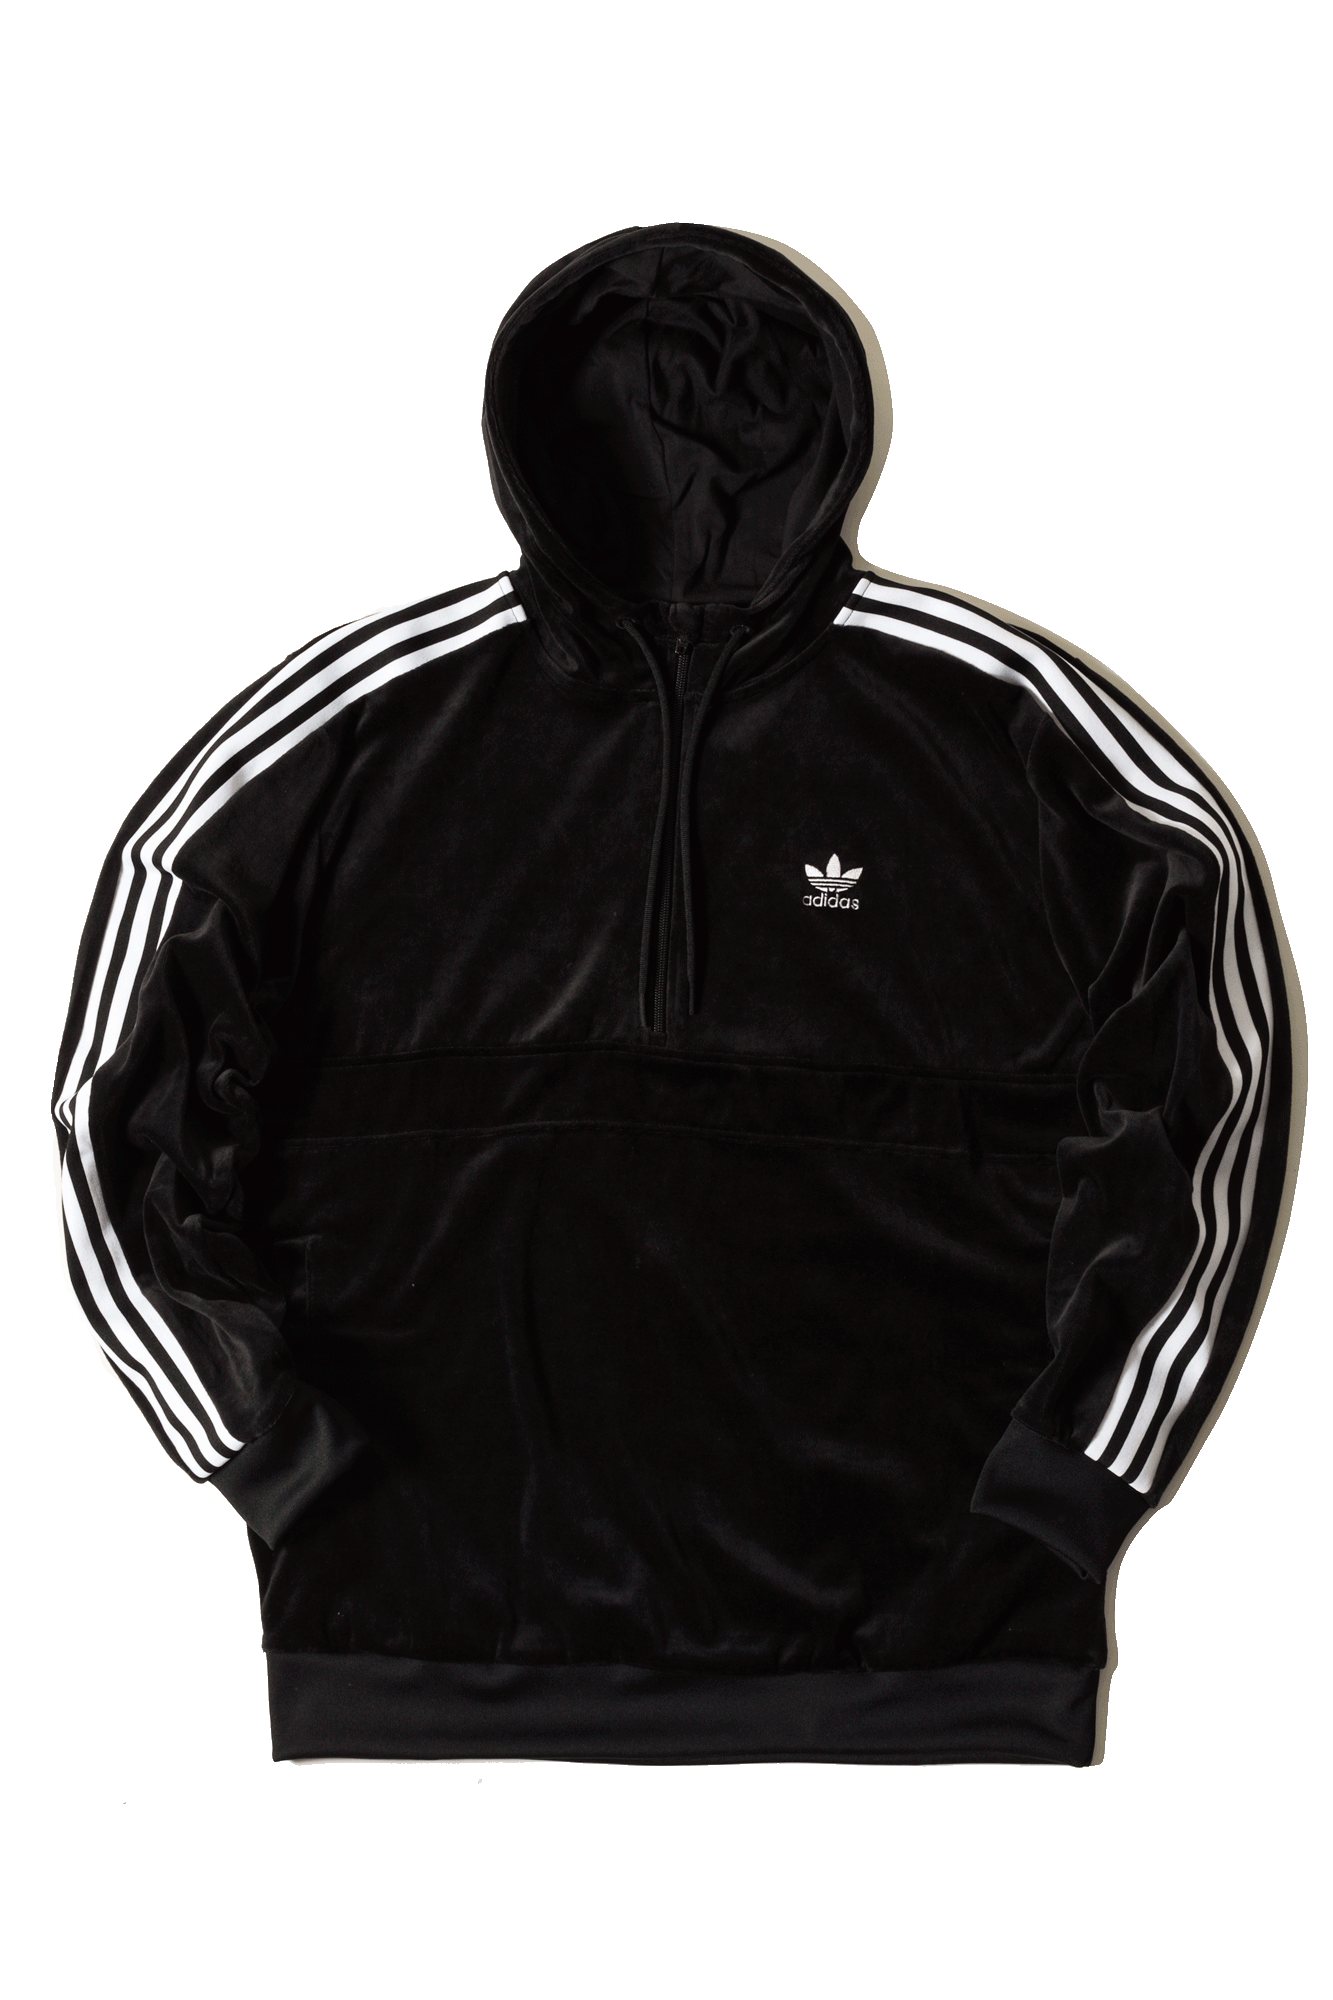 Adidas Originals Sweaters Cozy Halfzip Black DX3625#000#C0010#XS - One Block Down